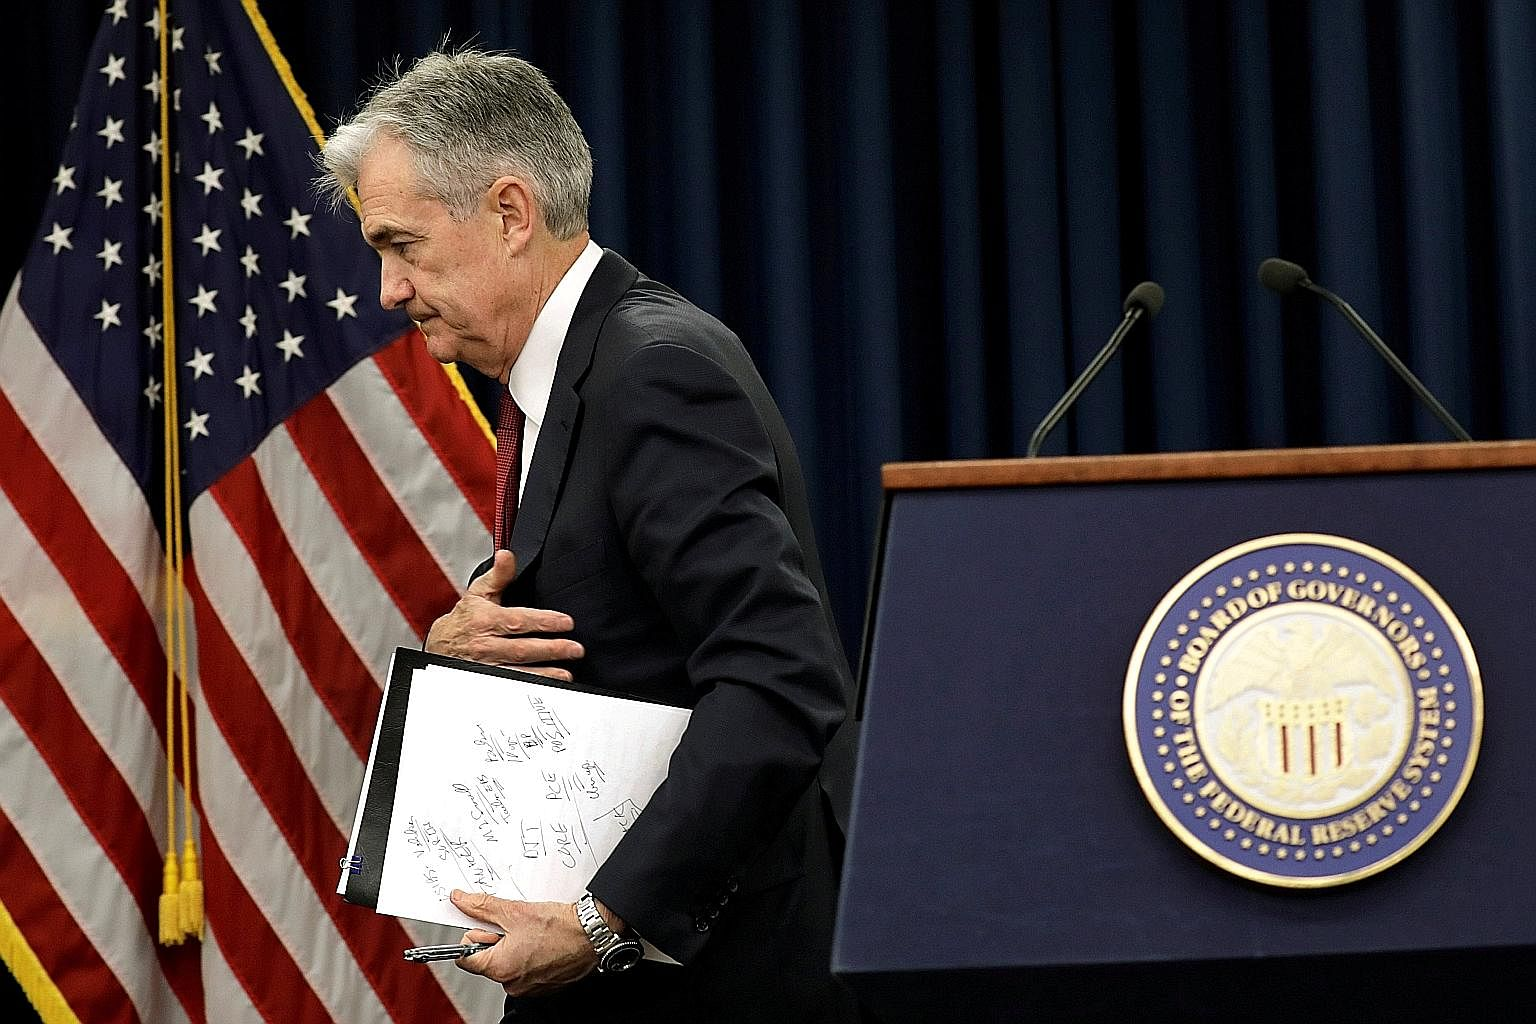 Mr Jerome Powell speaks about policy in a style that is less economics textbook than past Fed chiefs.